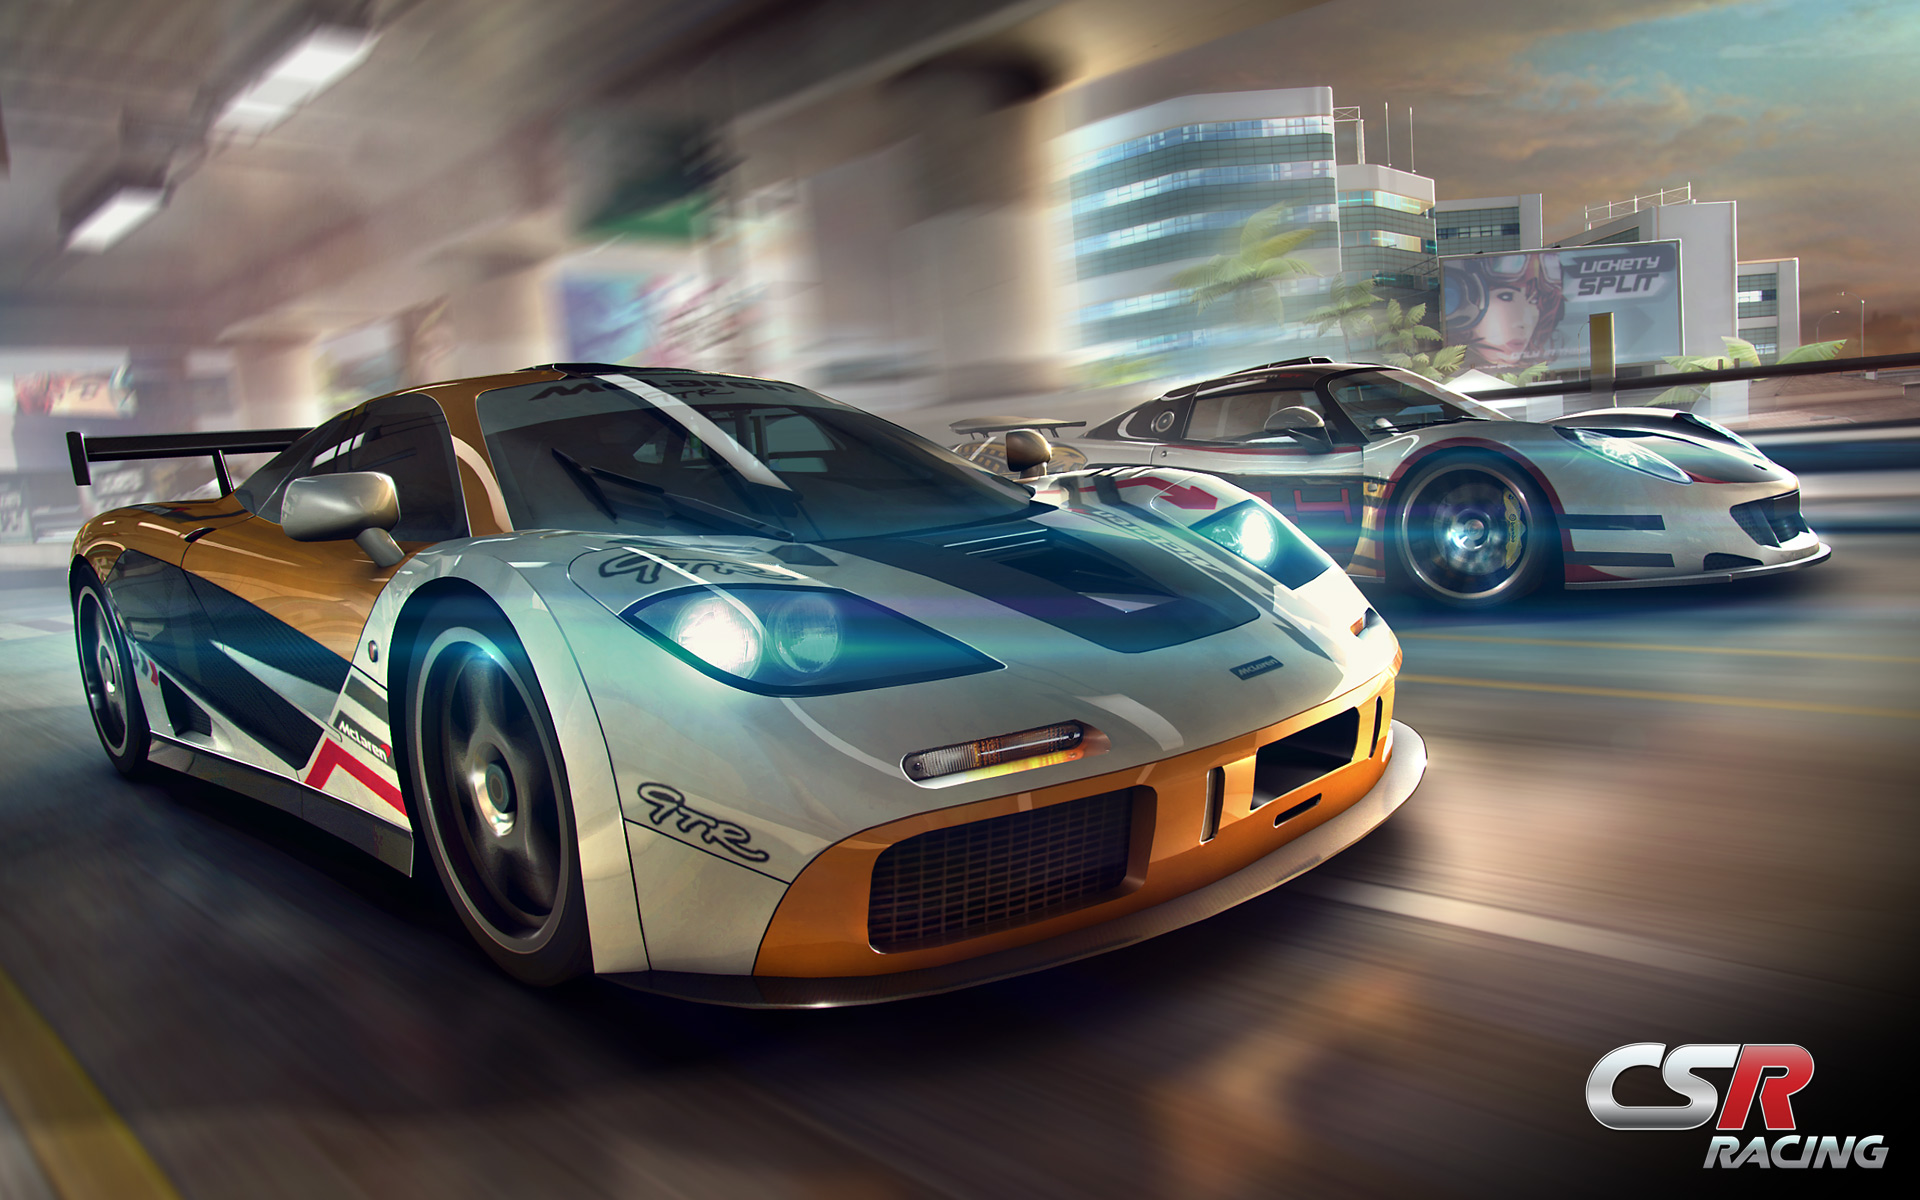 Racing Car Games Hd Wallpaper: CSR Racing Full HD Wallpaper And Background